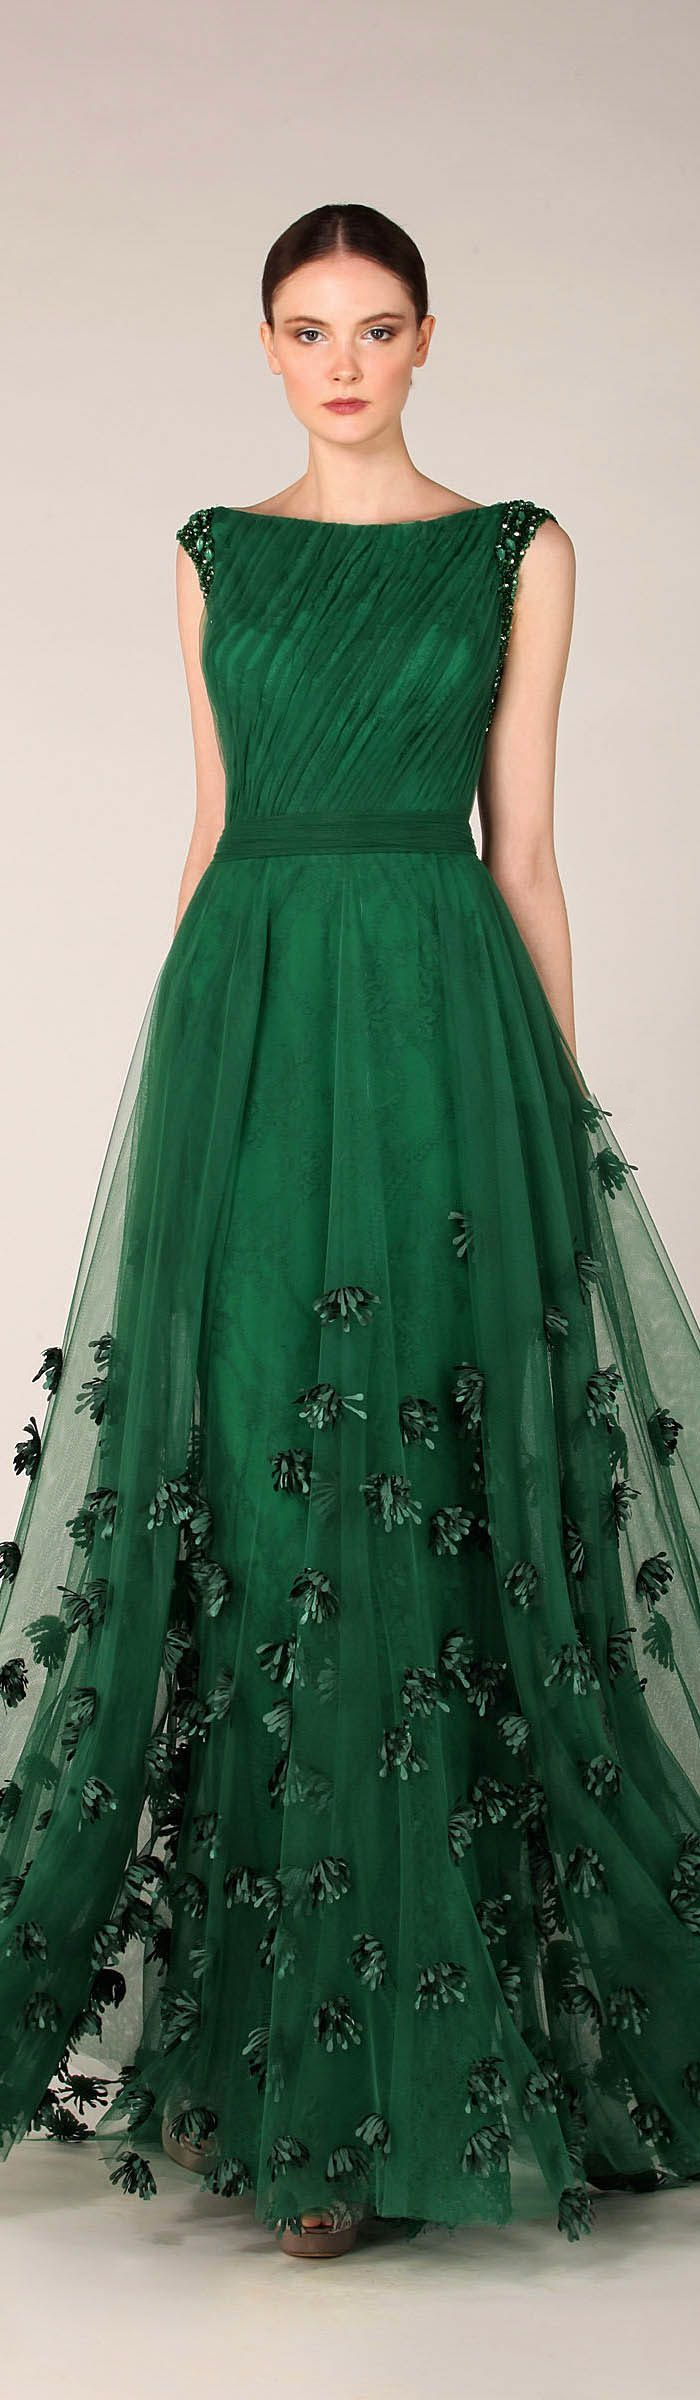 Tony Ward Fall Winter 2014 -- Emerald Green